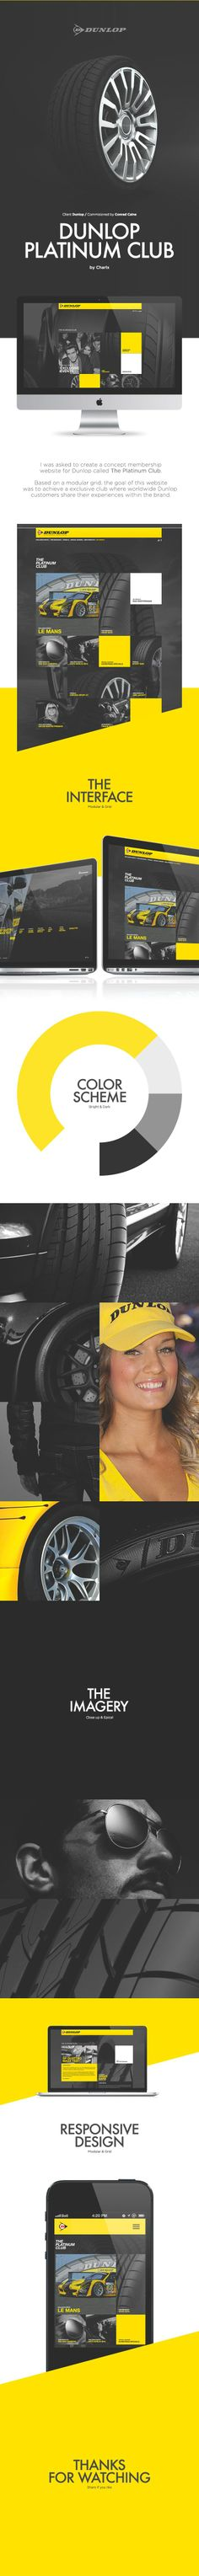 DUNLOP PLATINUM CLUB by Charlx | WEB DESIGN | Pinterest